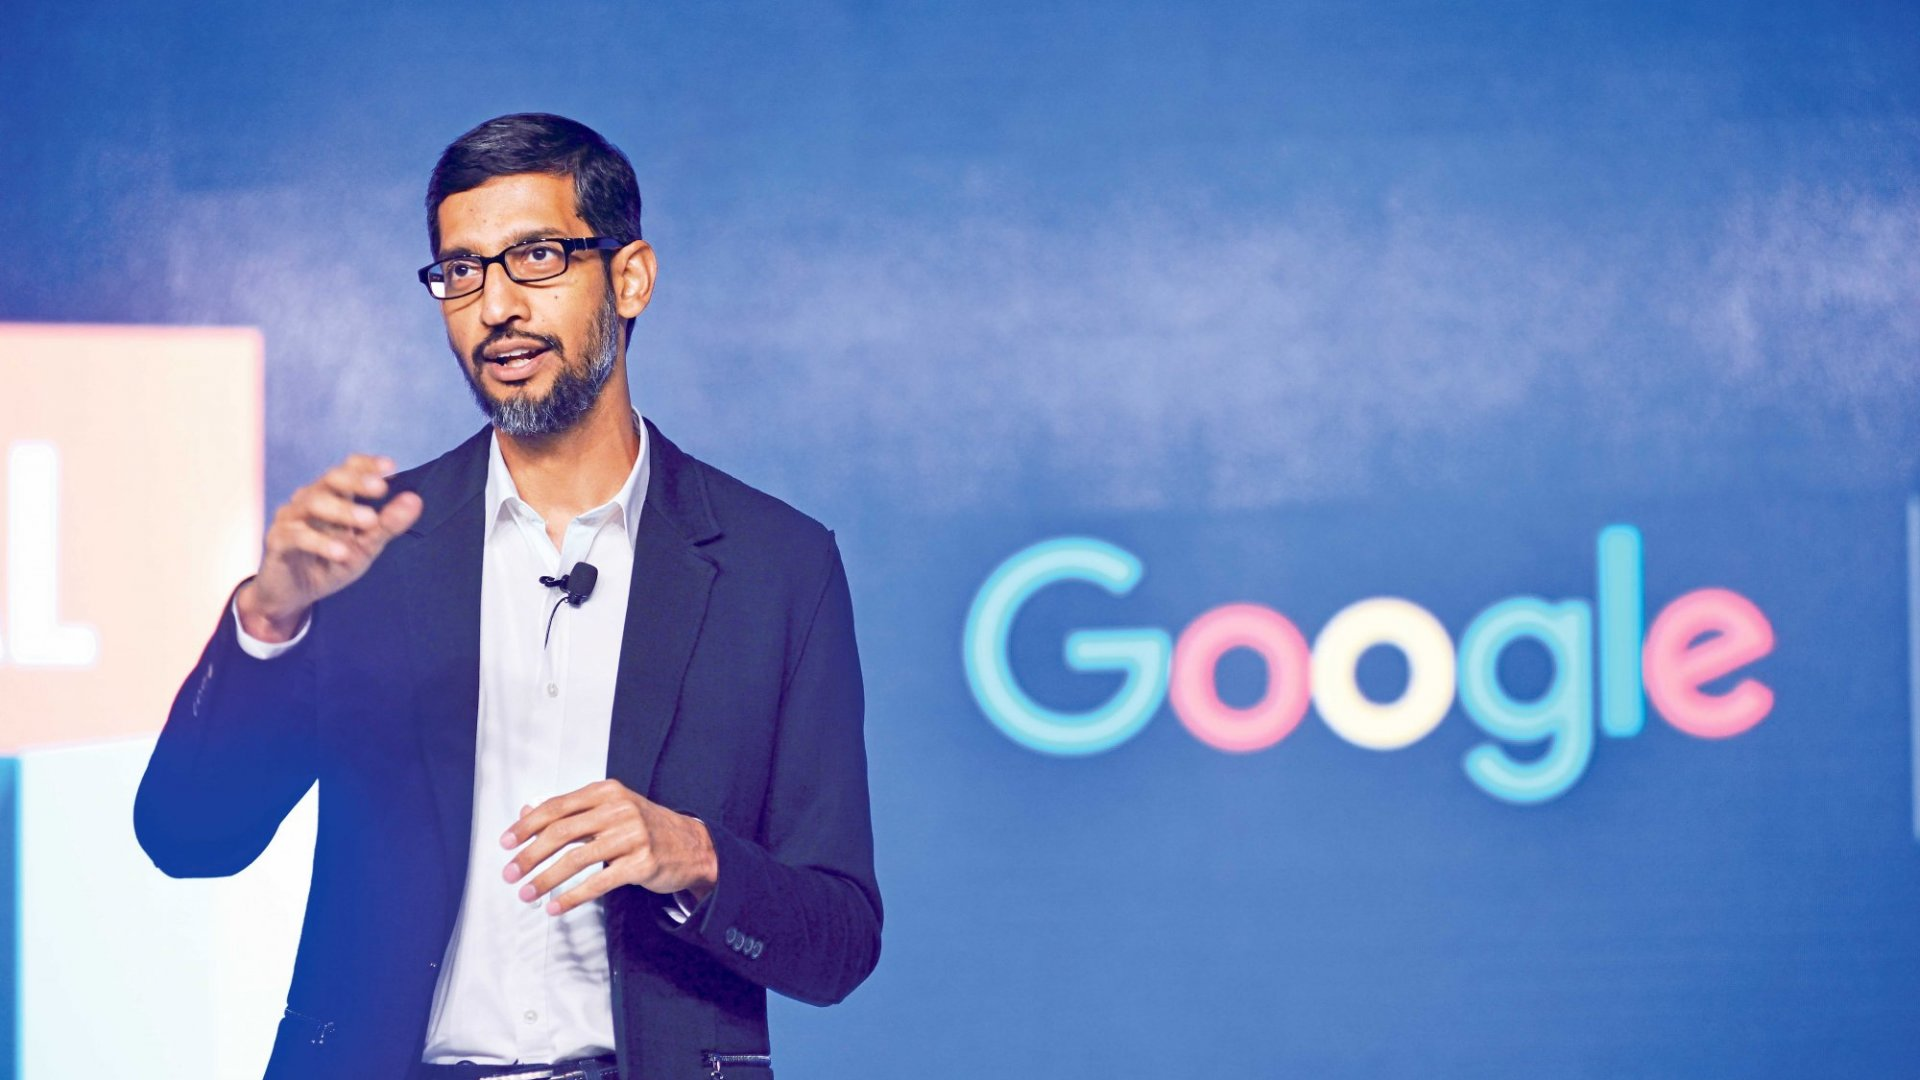 Google CEO Didn't Know The Answer to This Tricky Interview Question, But His Response Revealed His Wisdom